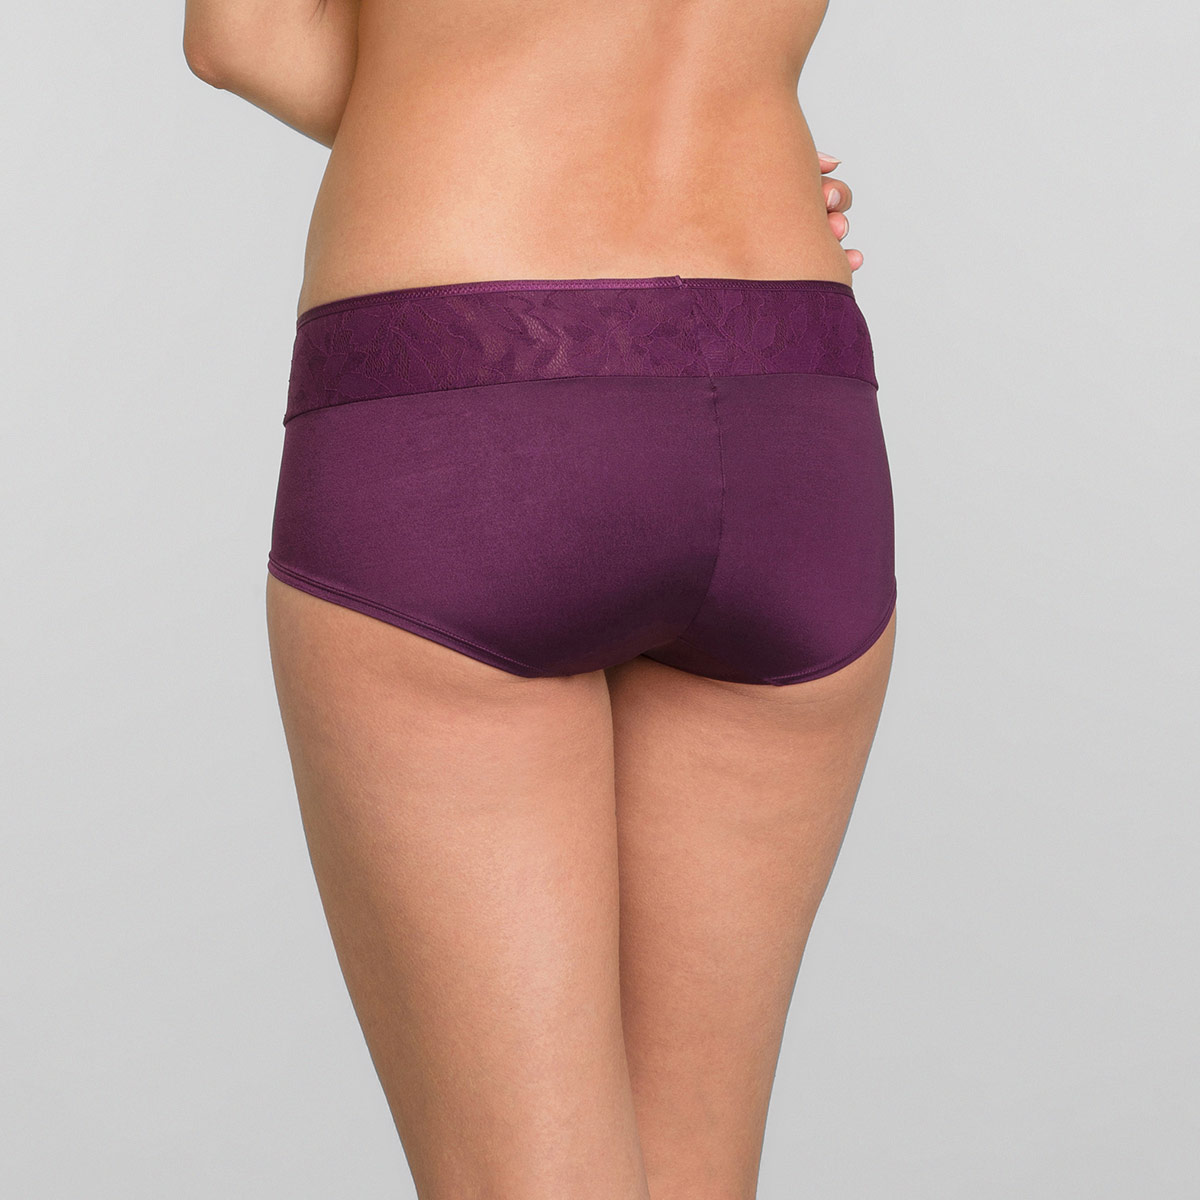 Panty prugna Ideal Beauty Lace, , PLAYTEX